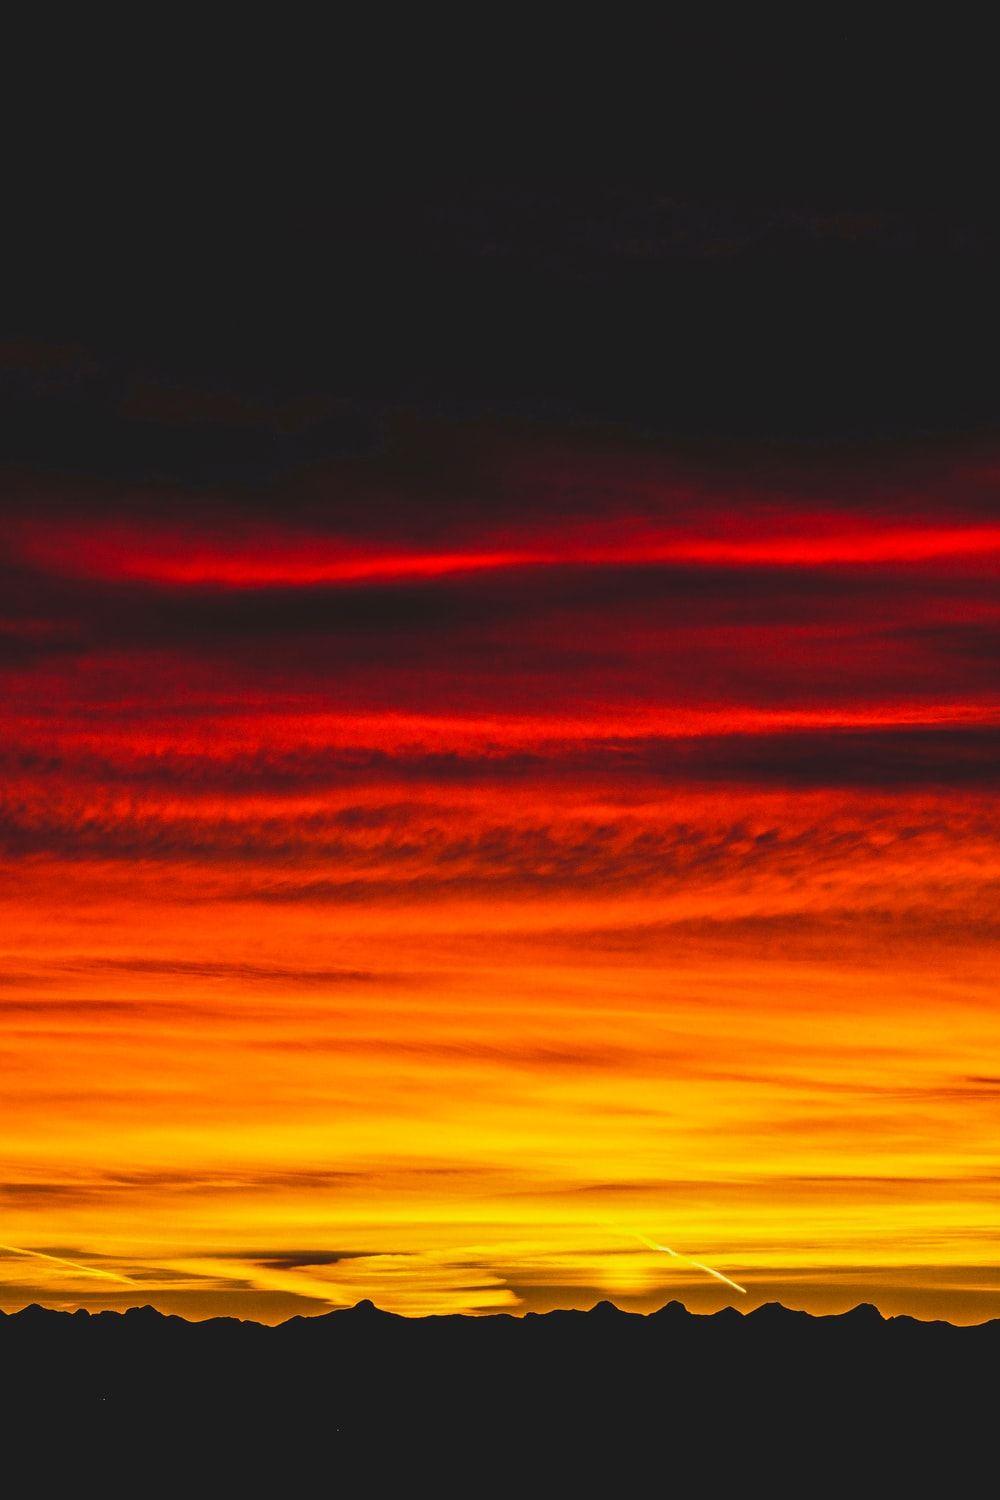 time-lapse photography of sunset